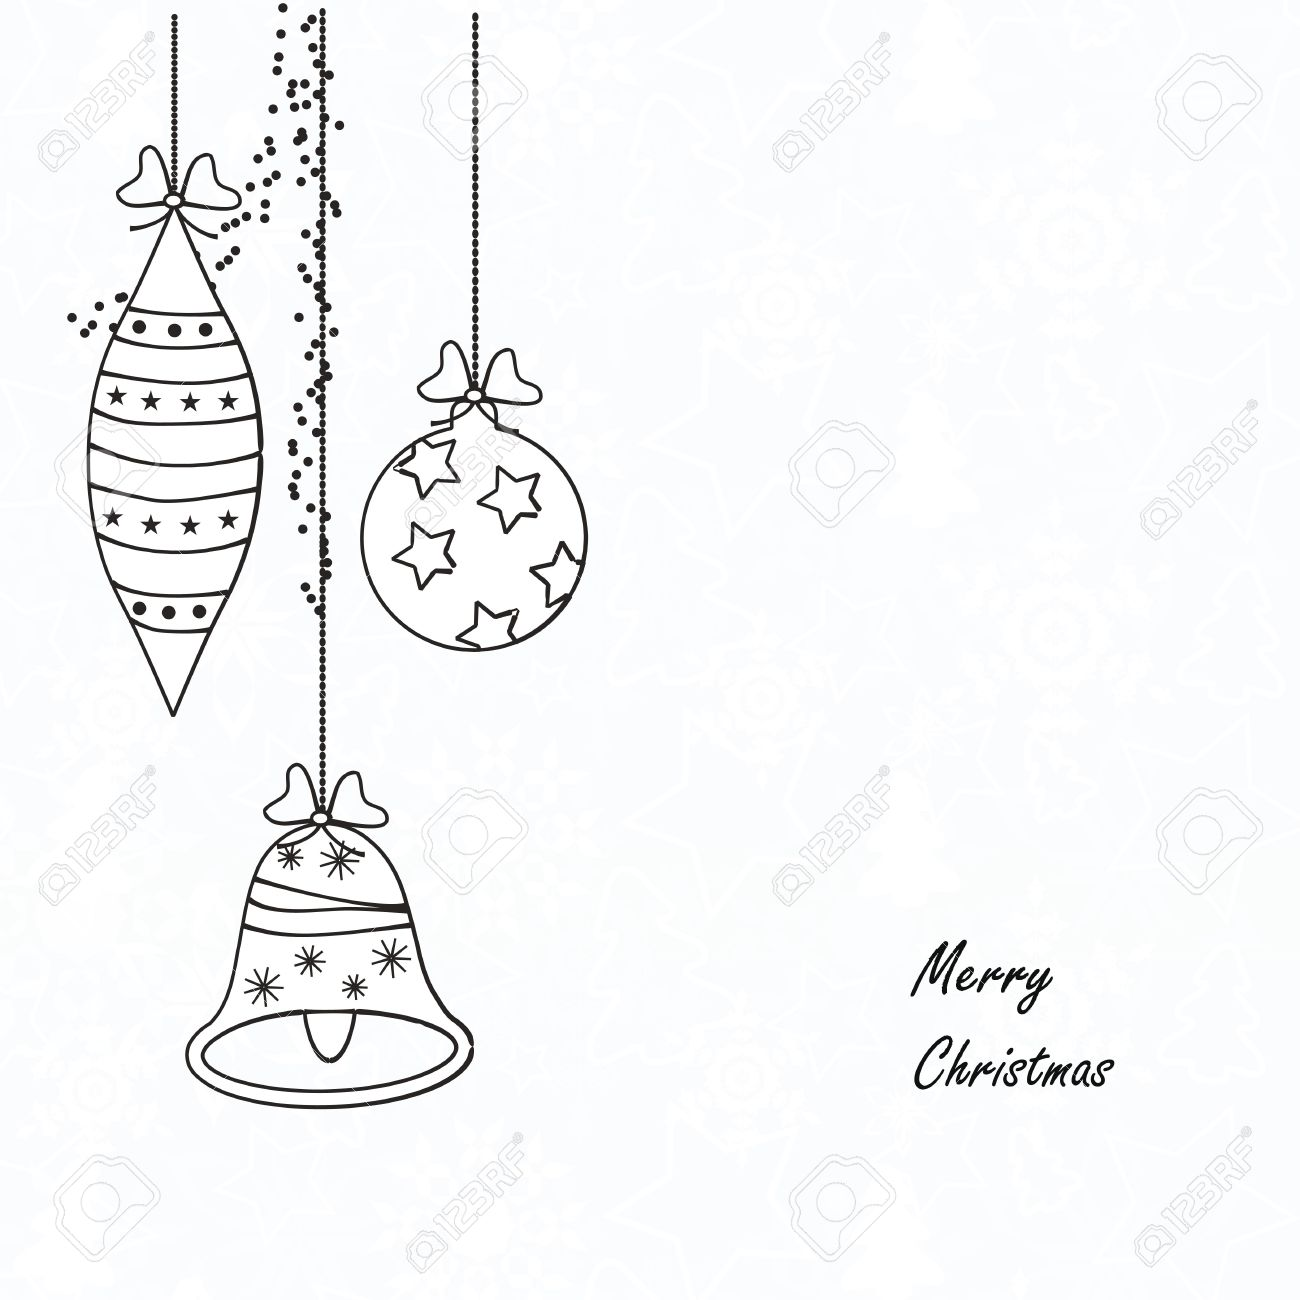 Black And White Modern Christmas Card Royalty Free Cliparts, Vectors ...